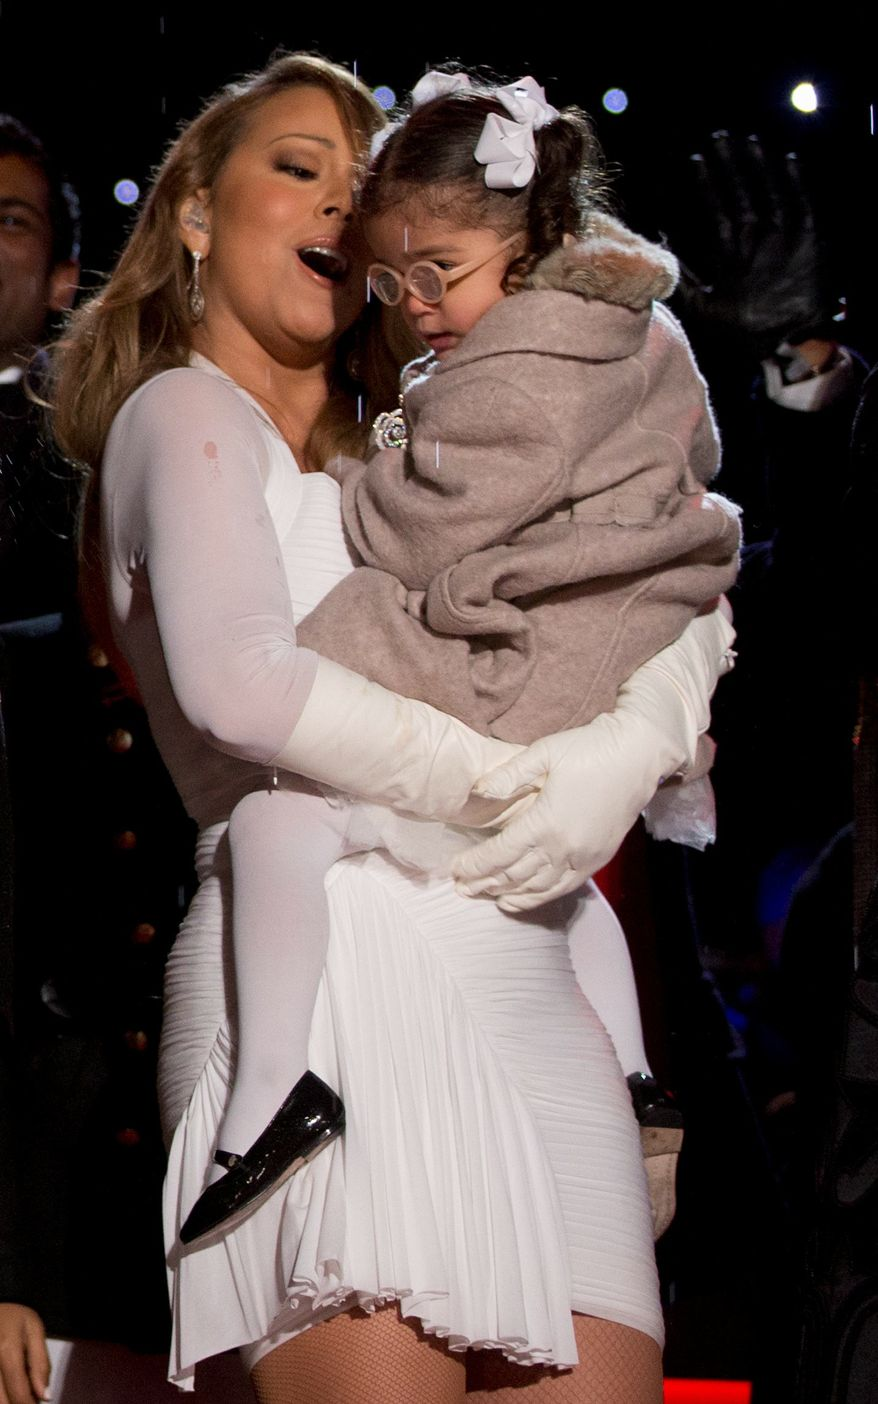 Singer and songwriter Mariah Carey holds her daughter Monroe Cannon on stage during the 2013 National Christmas Tree Lighting ceremony at the Ellipse in Washington, Friday, Dec. 6, 2013. (AP Photo/Carolyn Kaster)